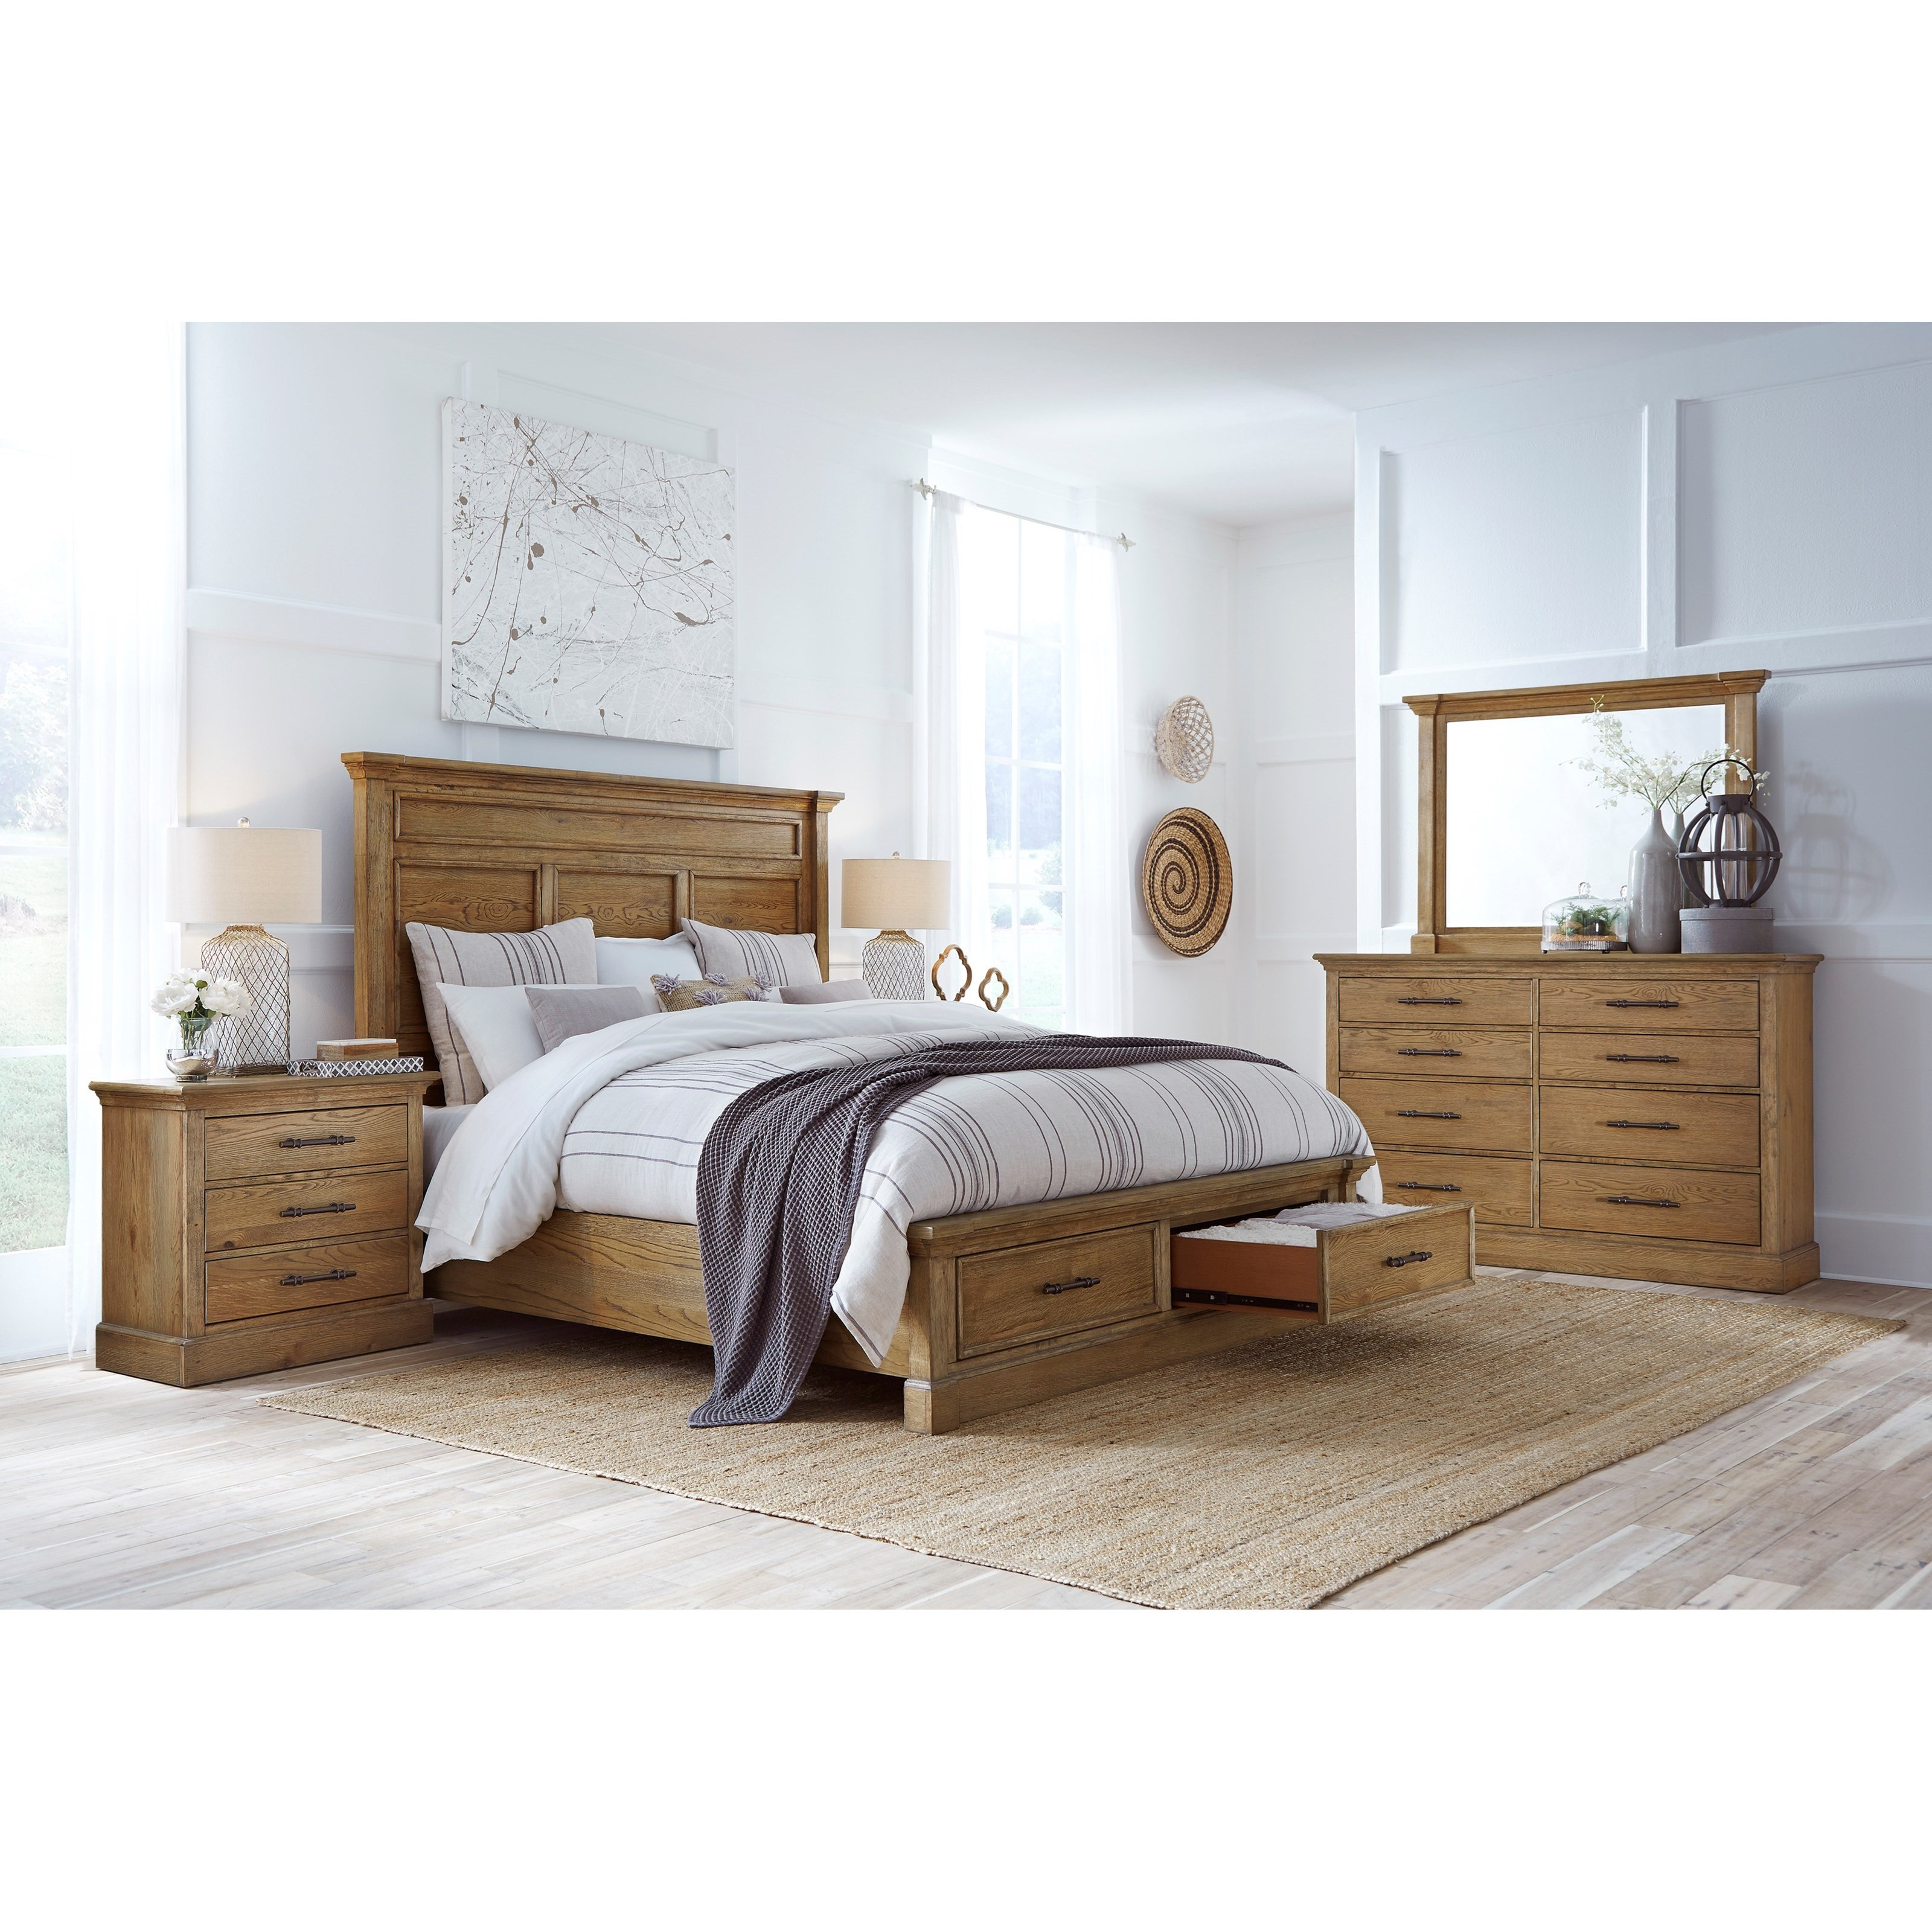 Manchester Queen Bedroom Group by Aspenhome at Stoney Creek Furniture